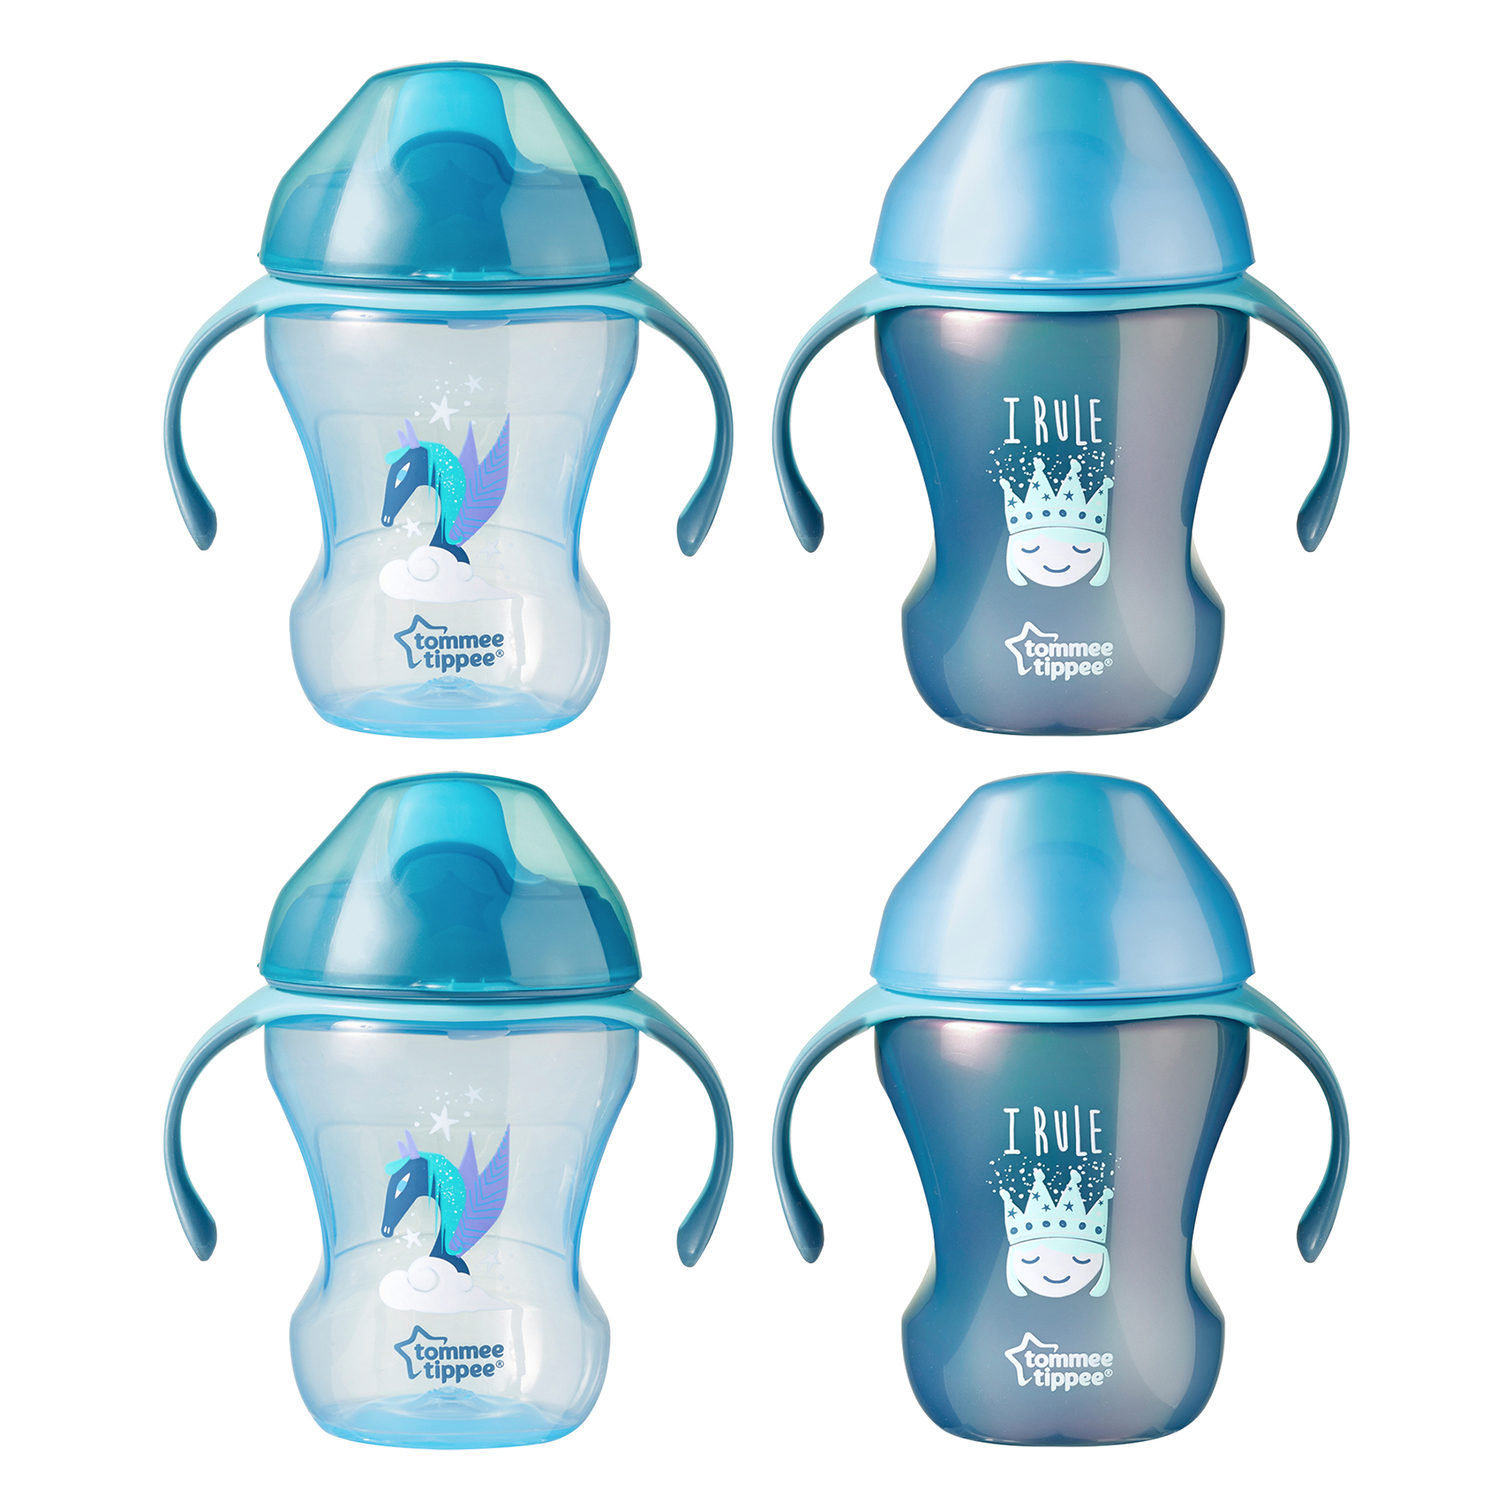 Tommee Tippee Trainer Transition Sippee Cup, 7m+, 8oz, 4pk, Girl by Tommee Tippee